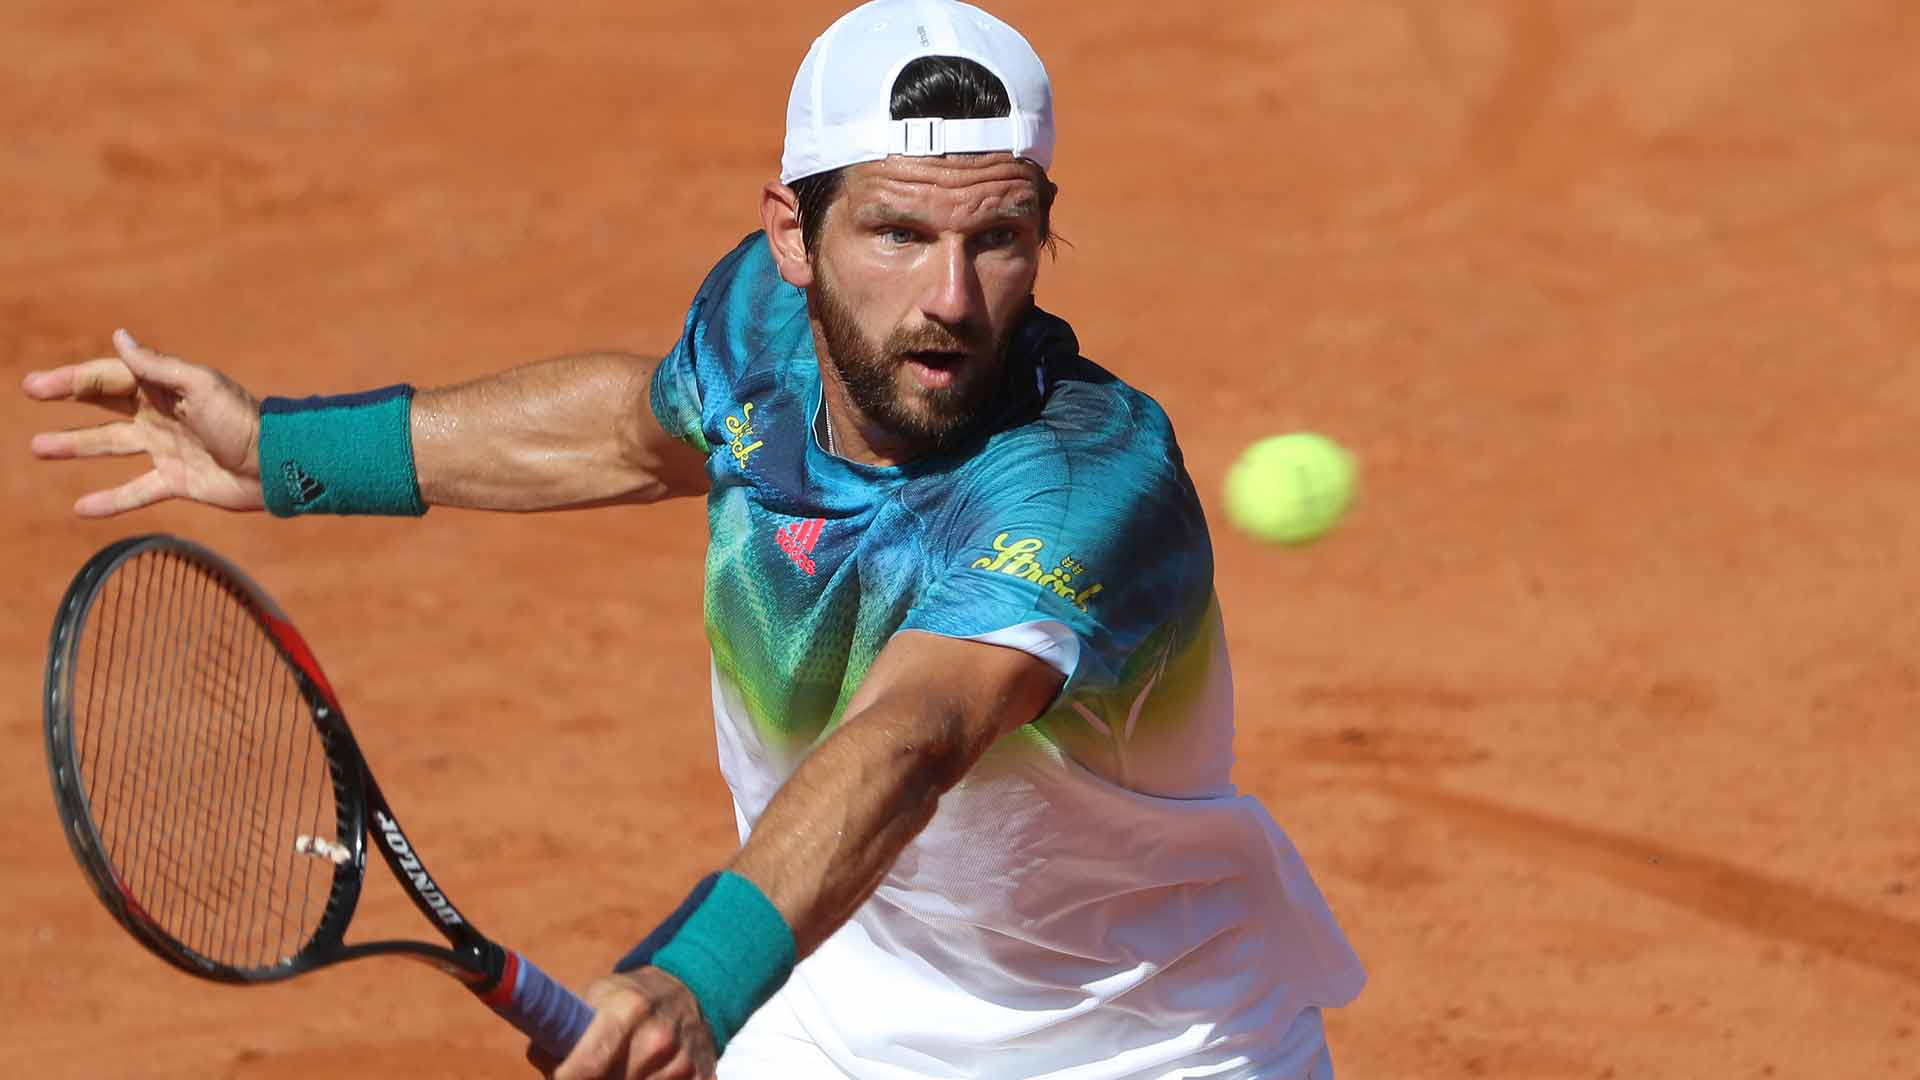 1920x1080 - Jurgen Melzer Wallpapers 3